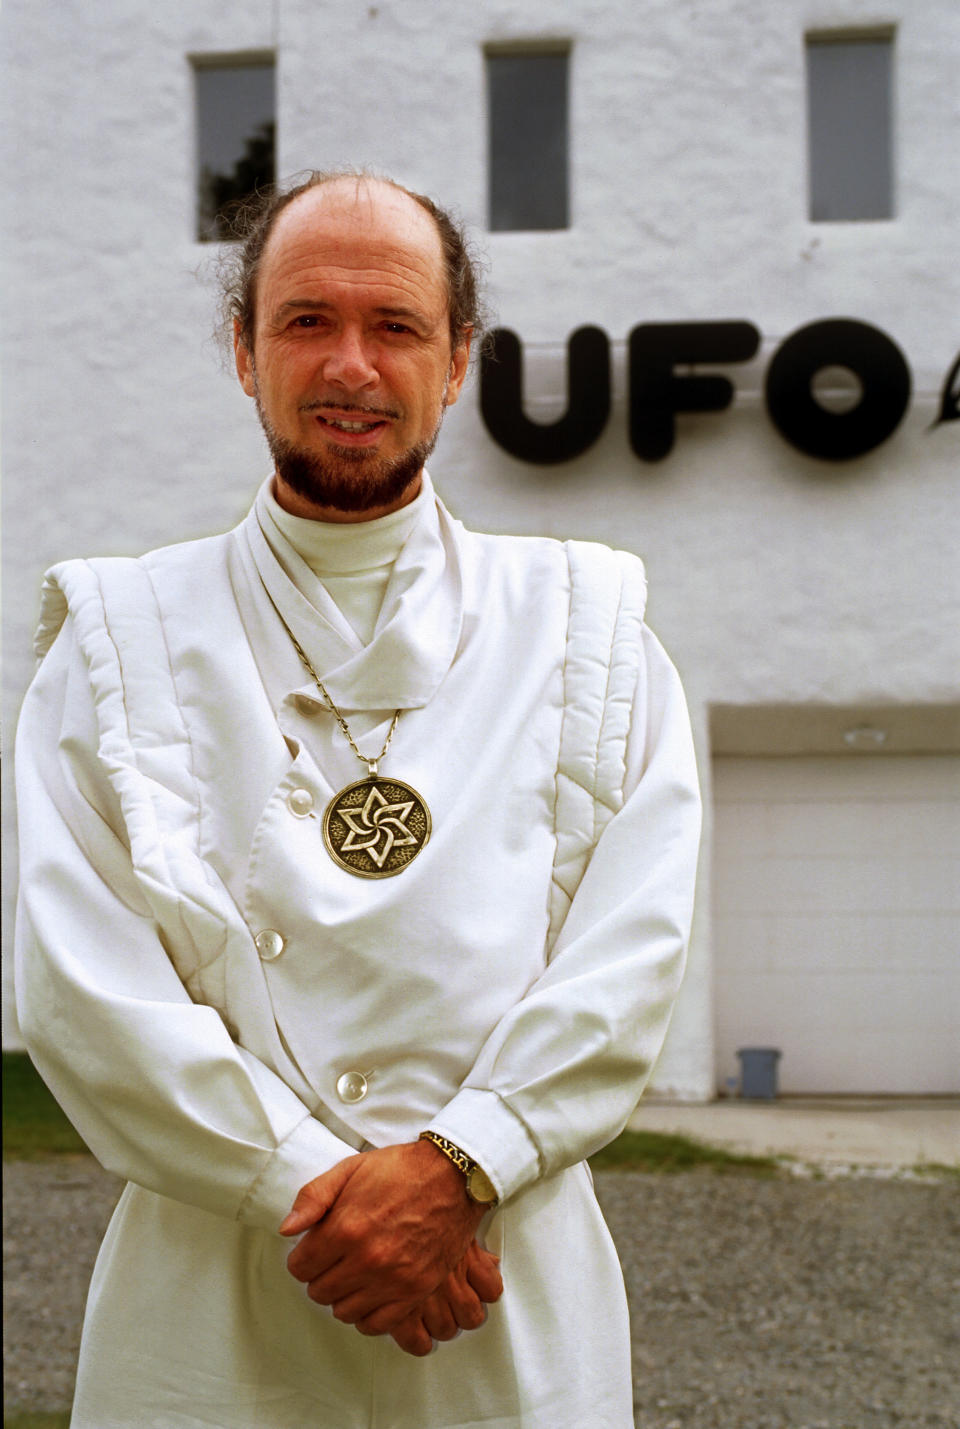 Claude Vorilhon, the spiritual leader of the Raelians, wears white robes and a large medallion necklace while standing outside a large white building with the sign 'UFO land' in Valcourt, Quebec, Canada in 1997